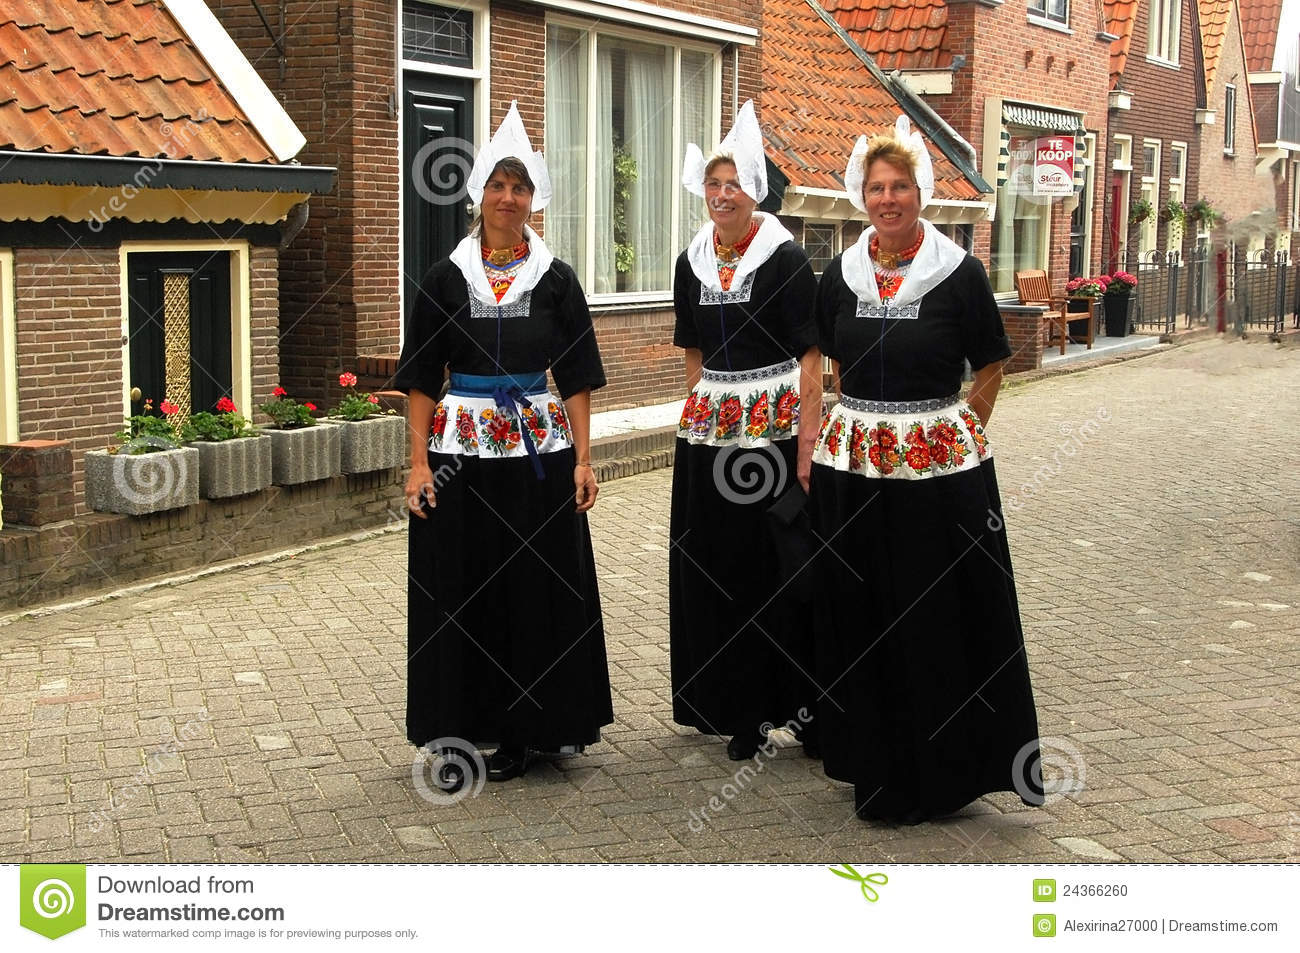 buddhist single women in dutch harbor Dutch-harbor clothing, shoes, furniture, cars, pets, electronics and appliance stores, deals and discounts.